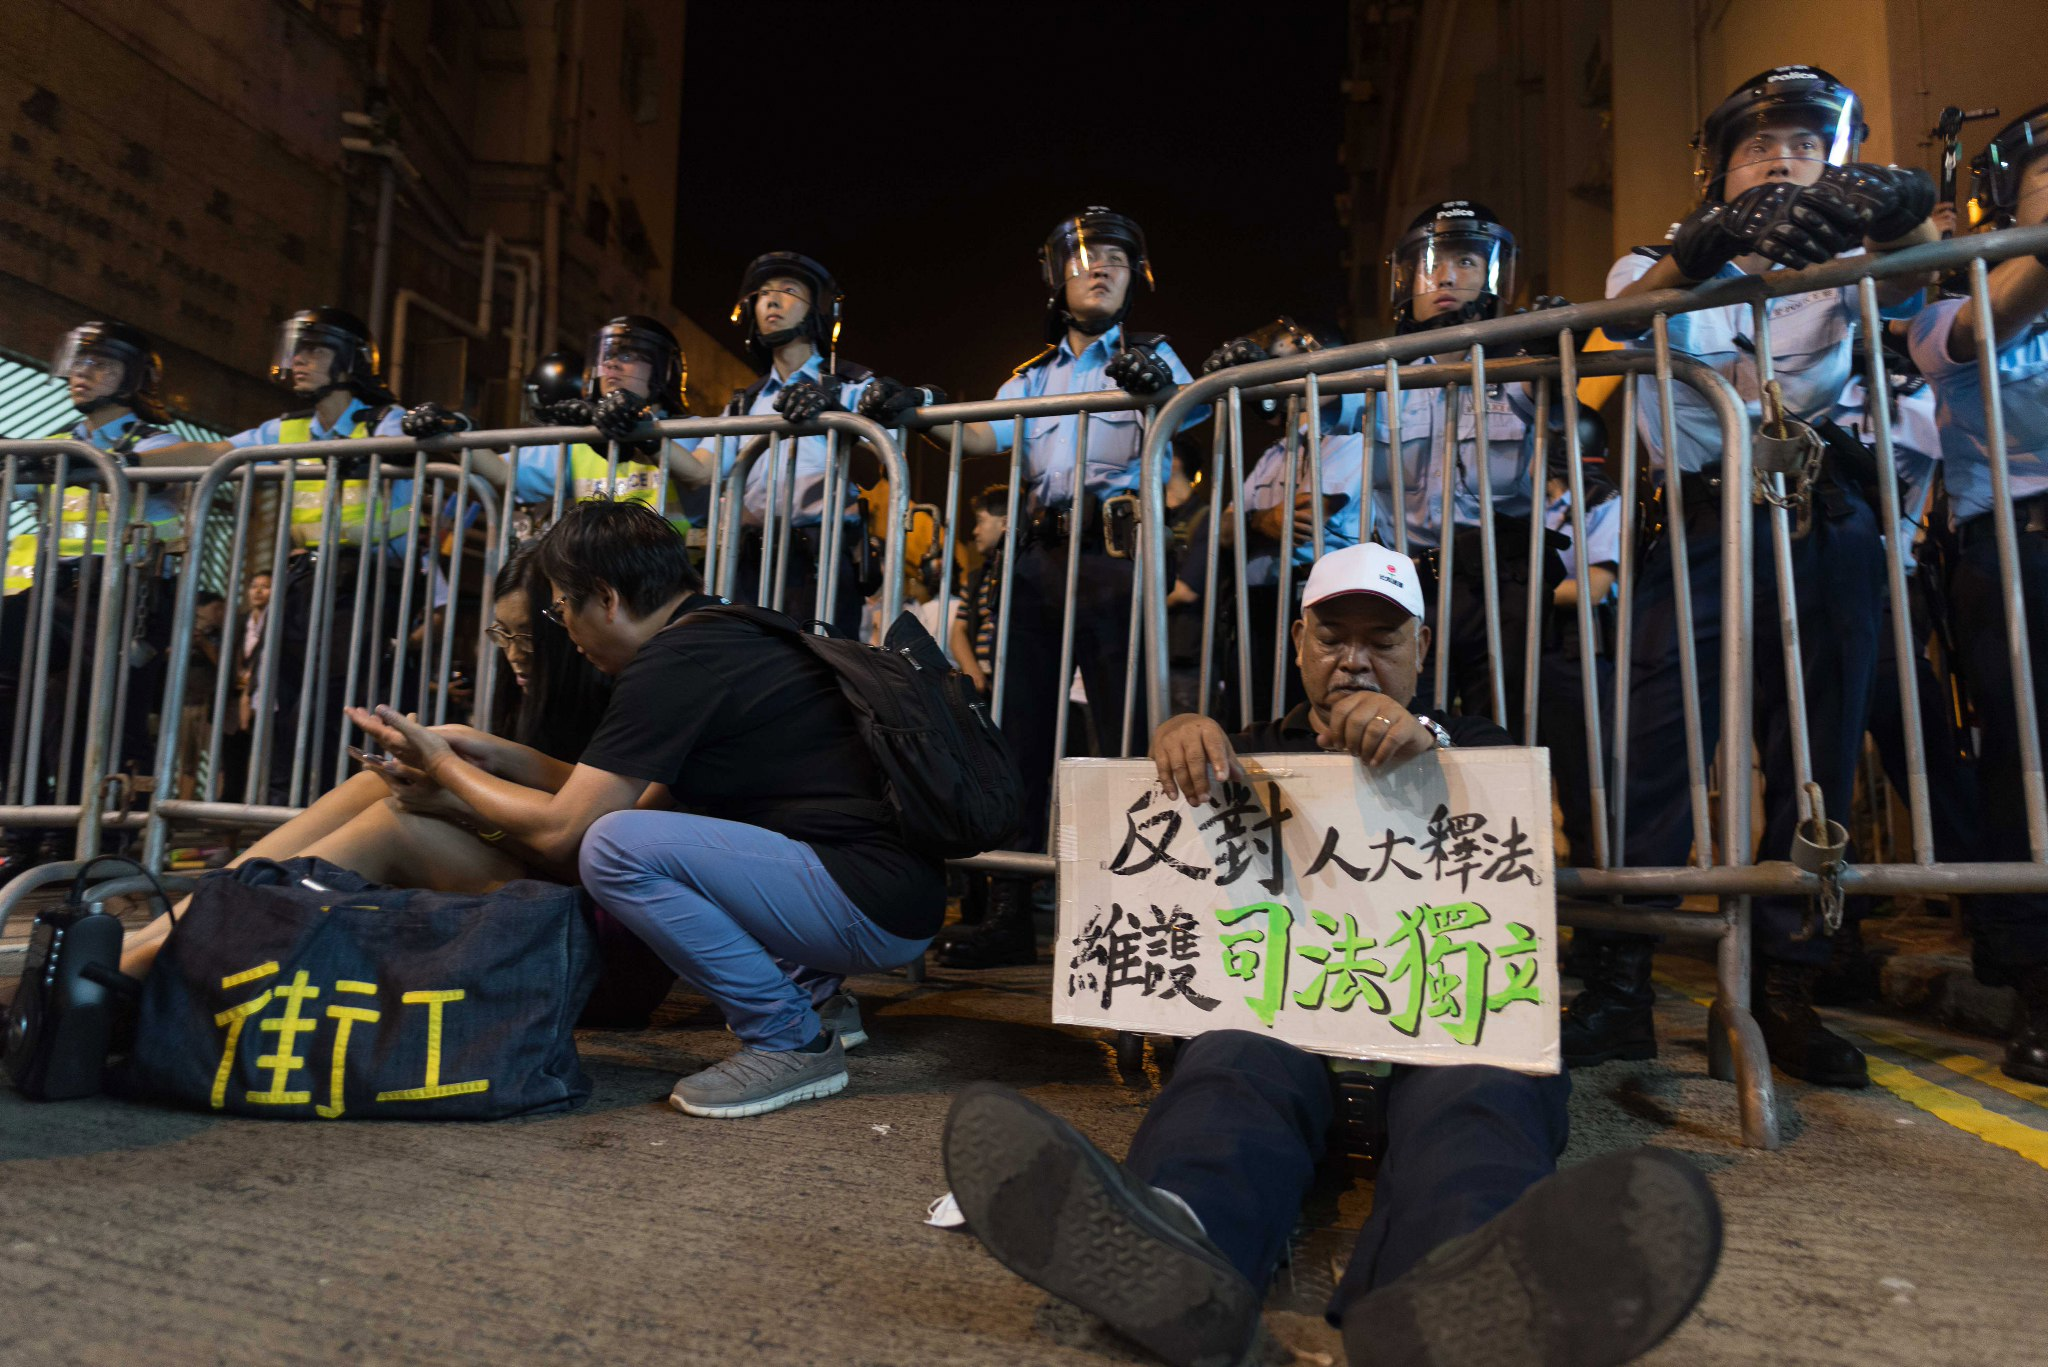 Hong Kong's Umbrella Movement and its failure